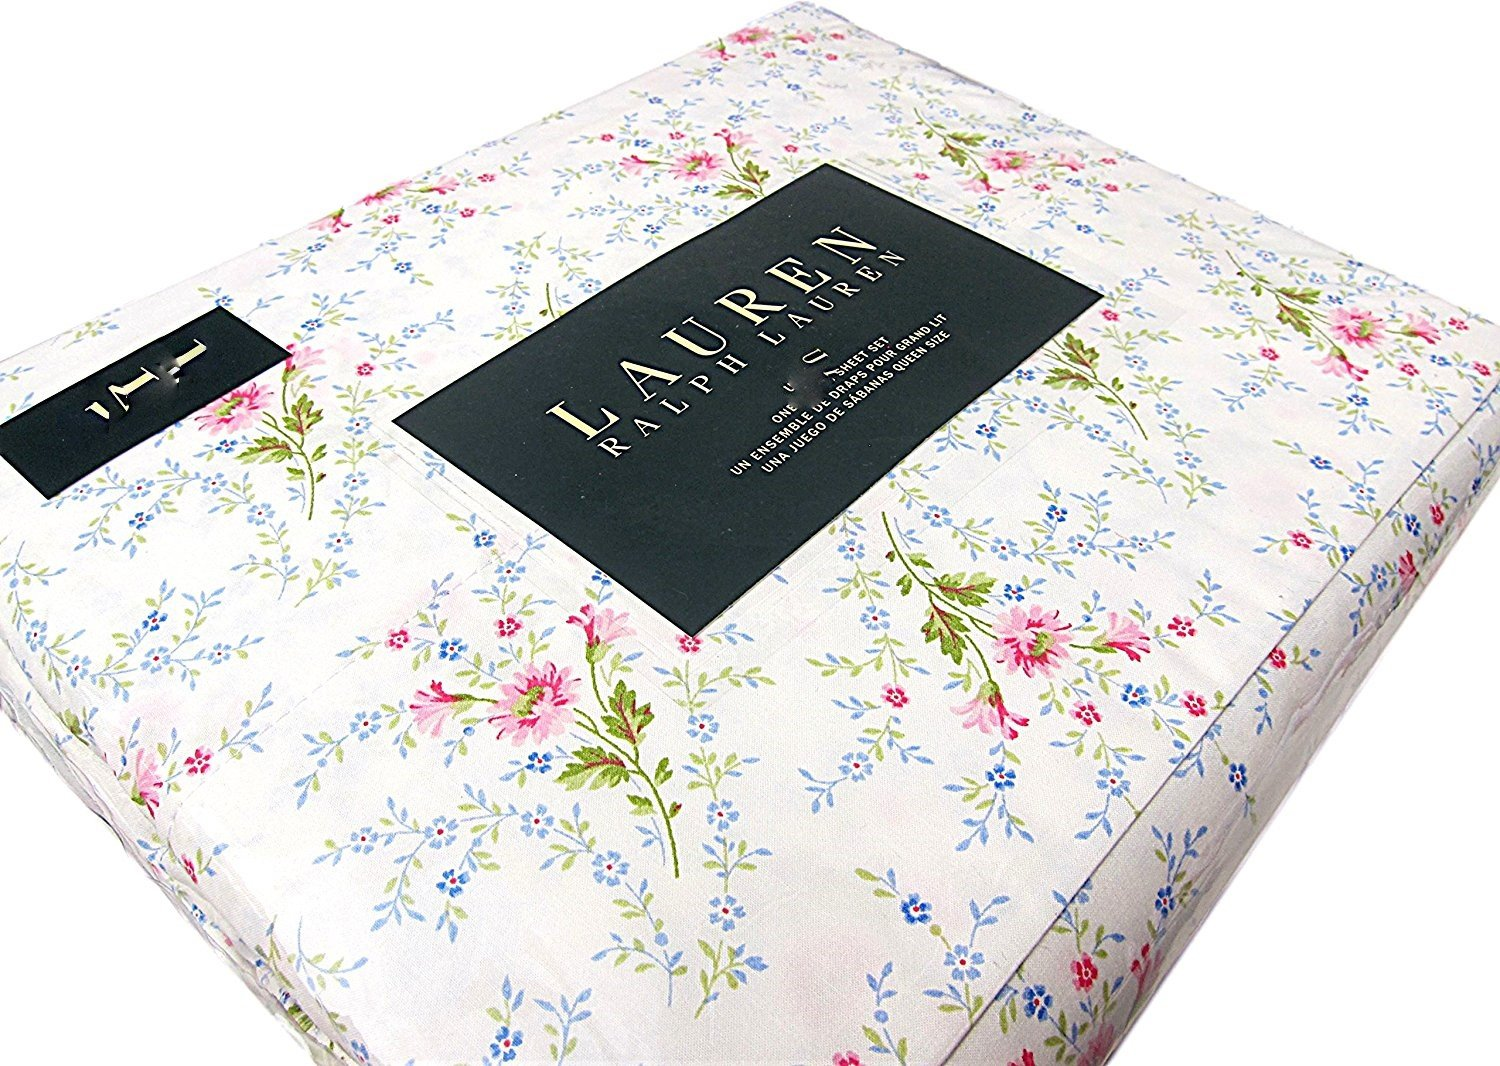 Ralph Lauren French Country Floral 4 Piece Sheets Set Full